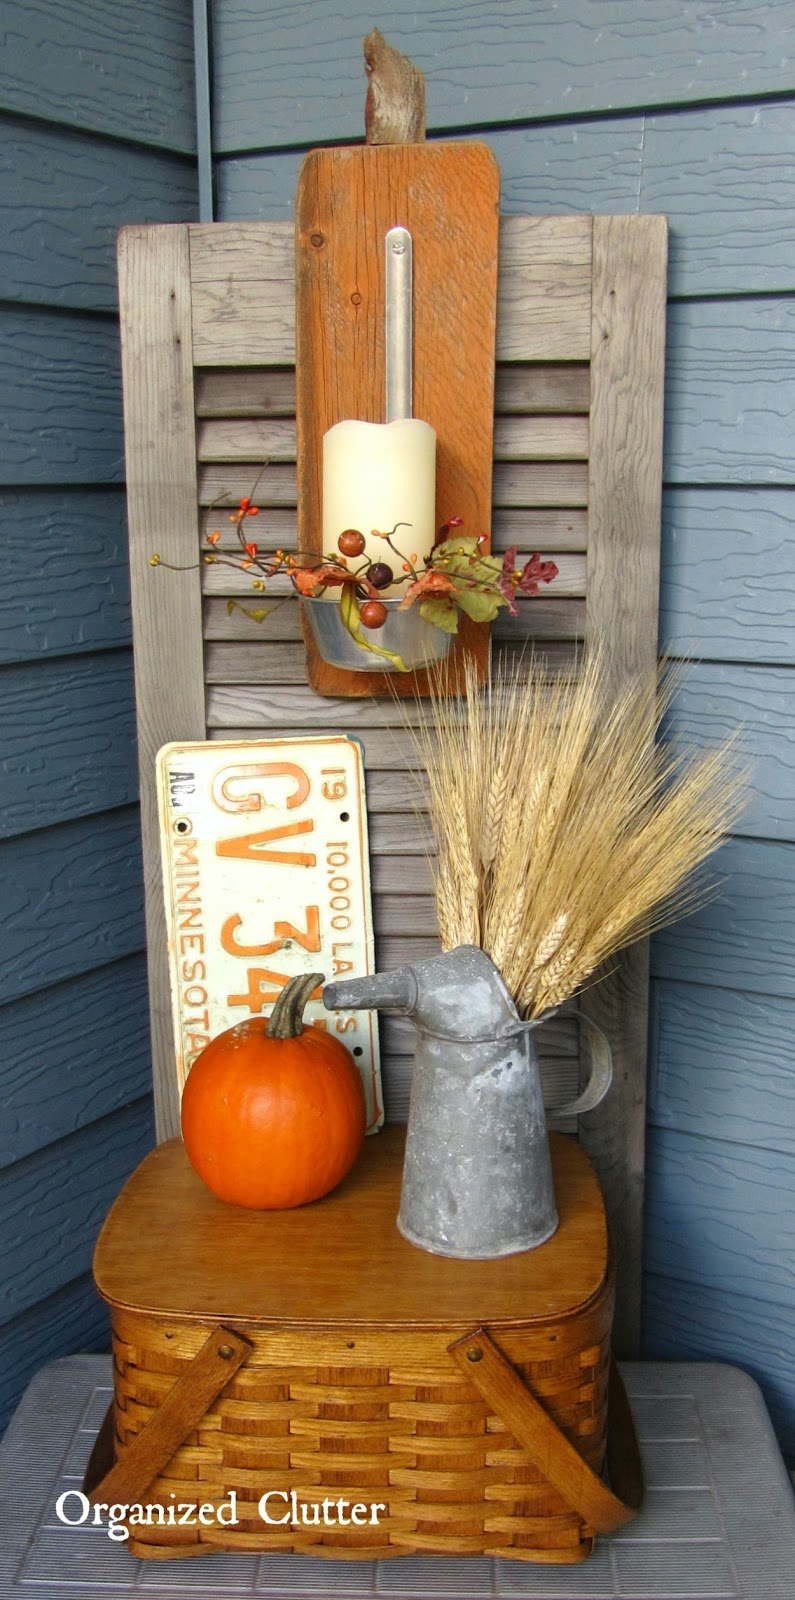 Barn Wood Ladle Candle Holder & Vignette www.organizedclutterqueen.blogspot.com